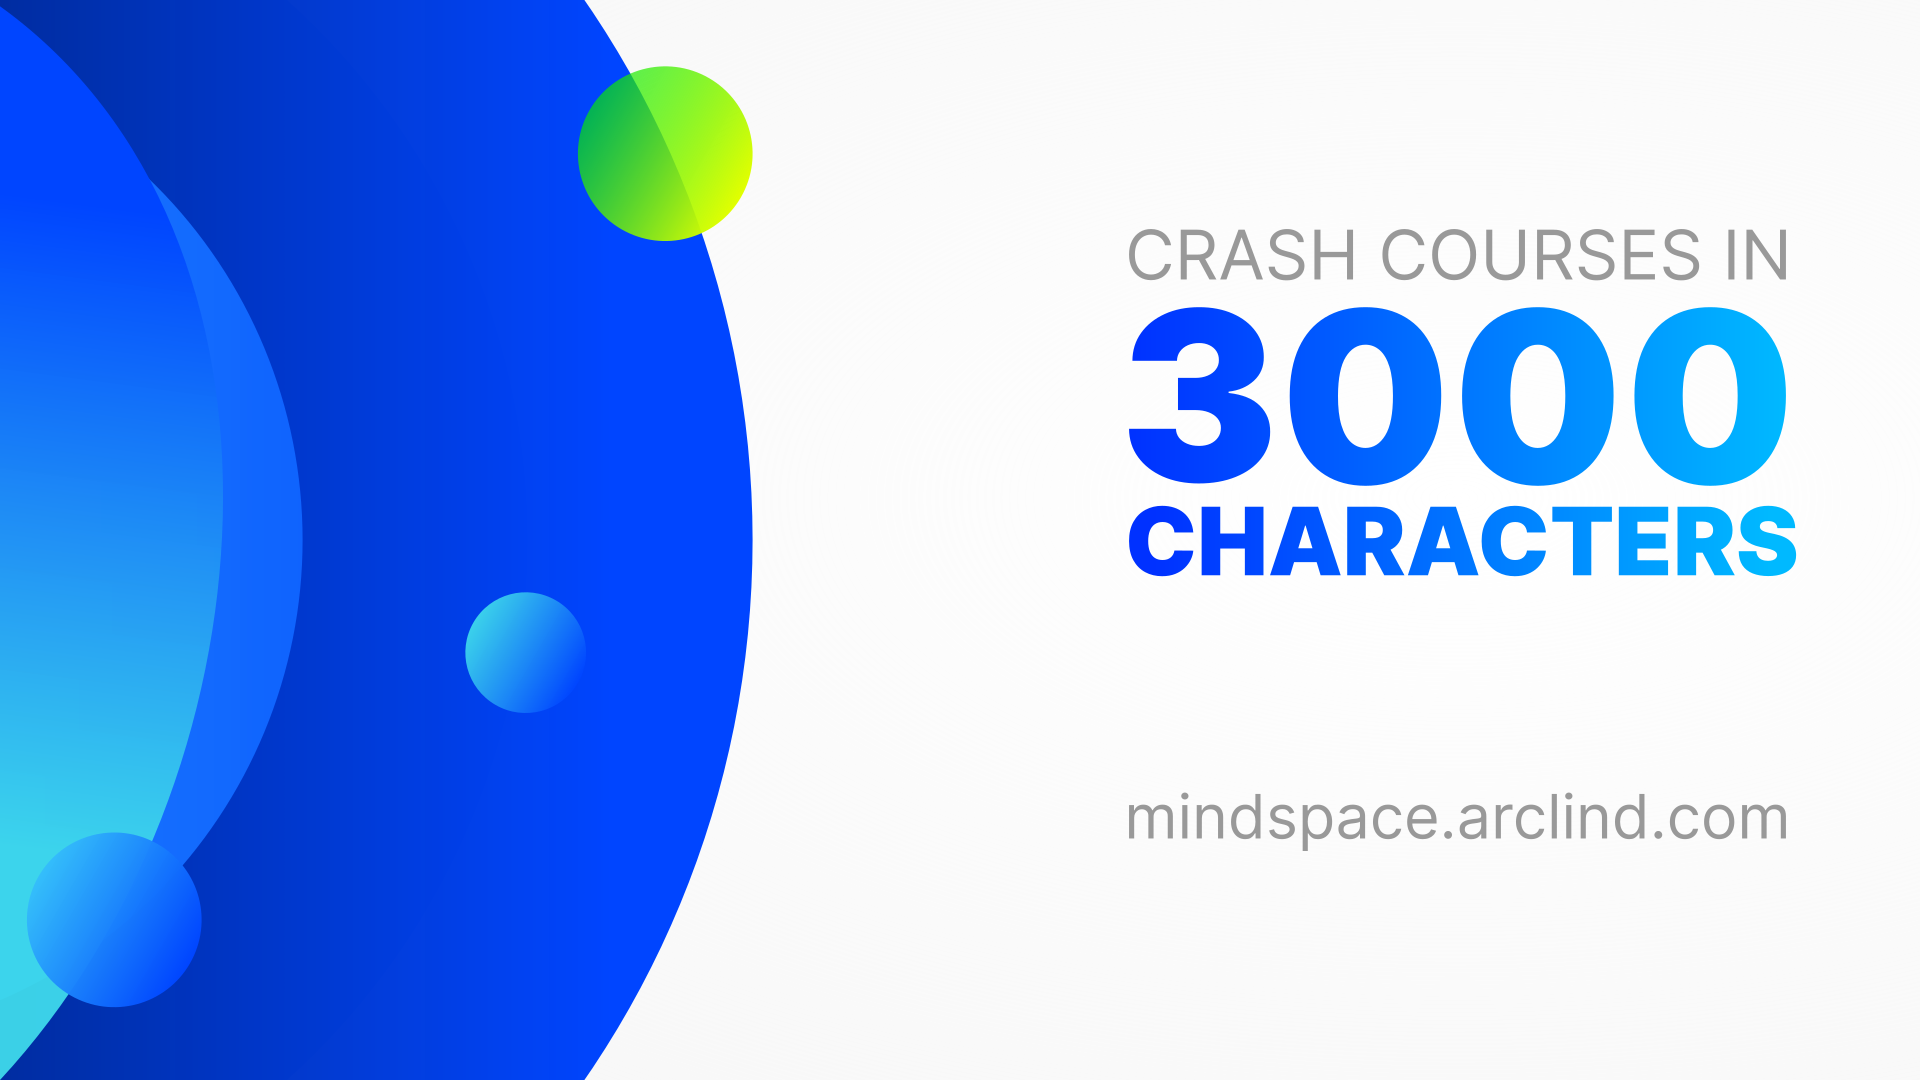 3000 character limit of all Arclind crash courses as an illustration with the elemental design concept.